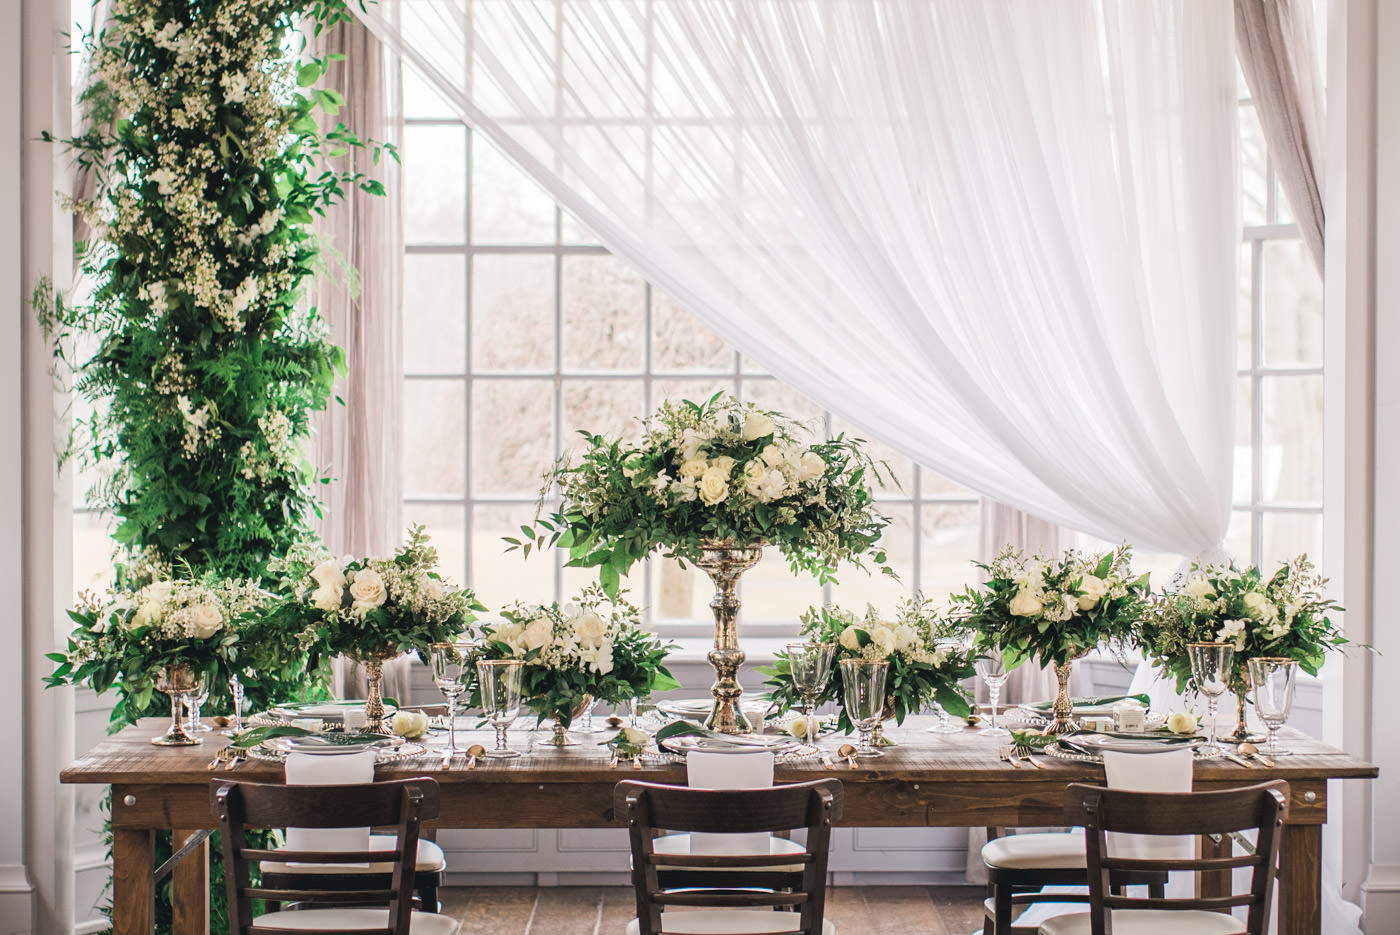 Fairy tale wedding table at the Estates of Sunnybrook